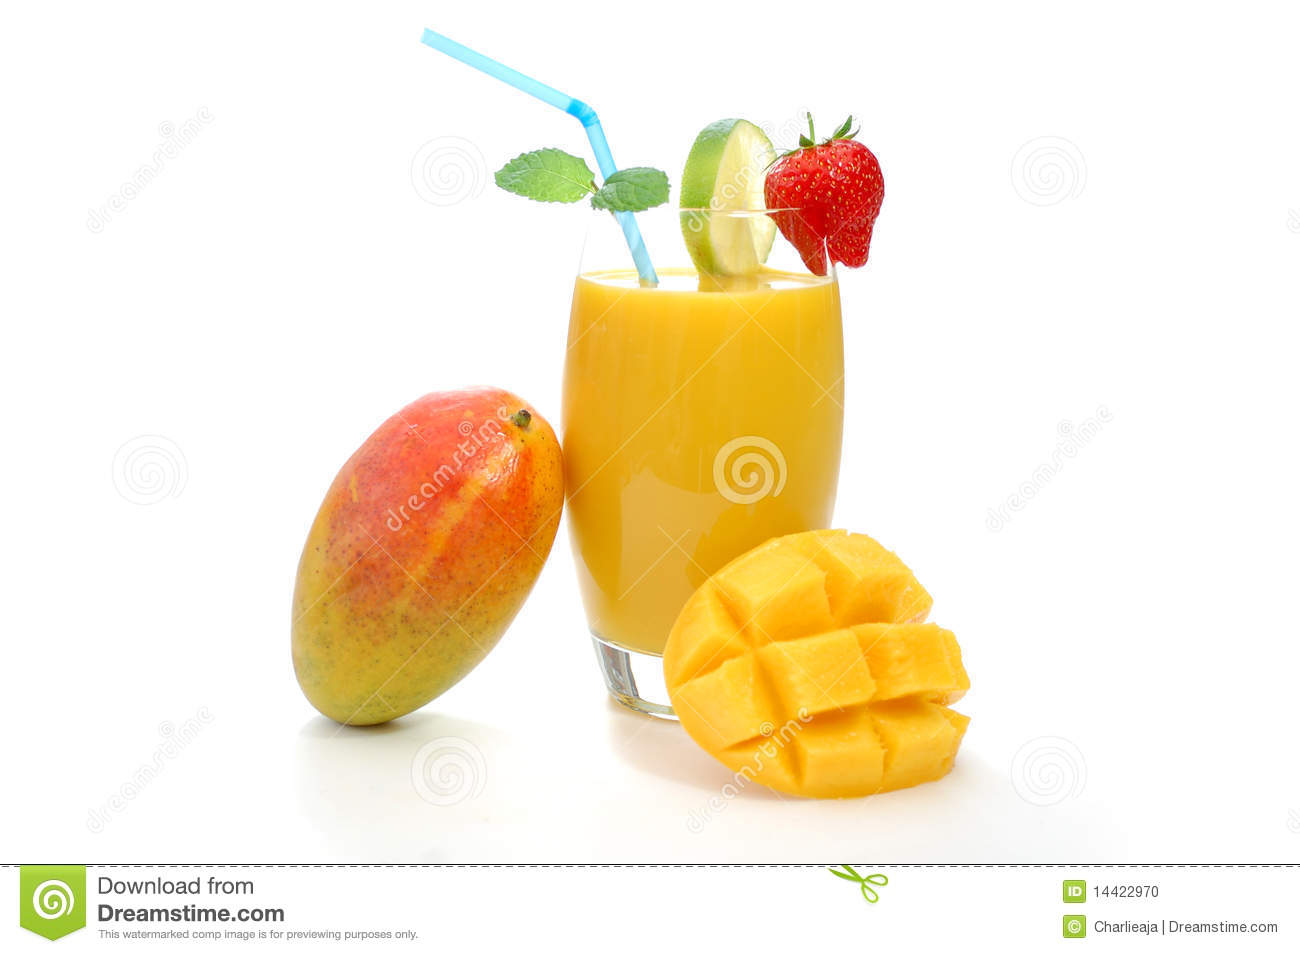 Whole mango resting on a glass with juice.